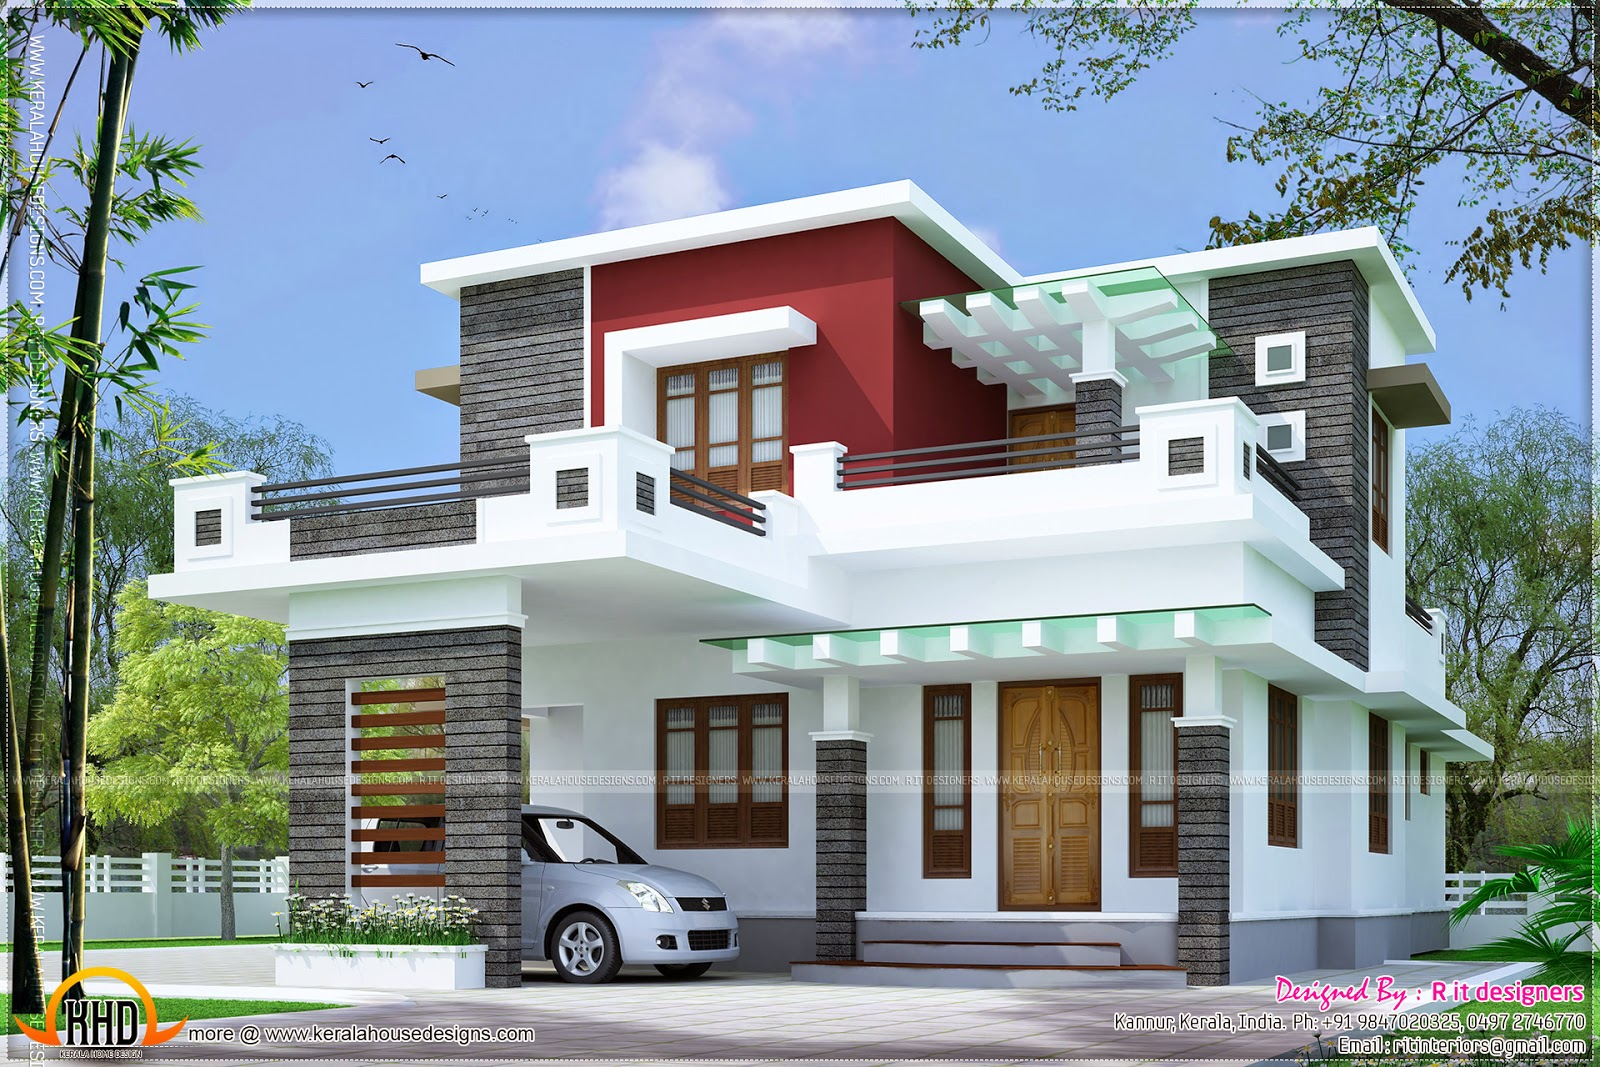 1959 square feet contemporary house exterior kerala home for Home front design model